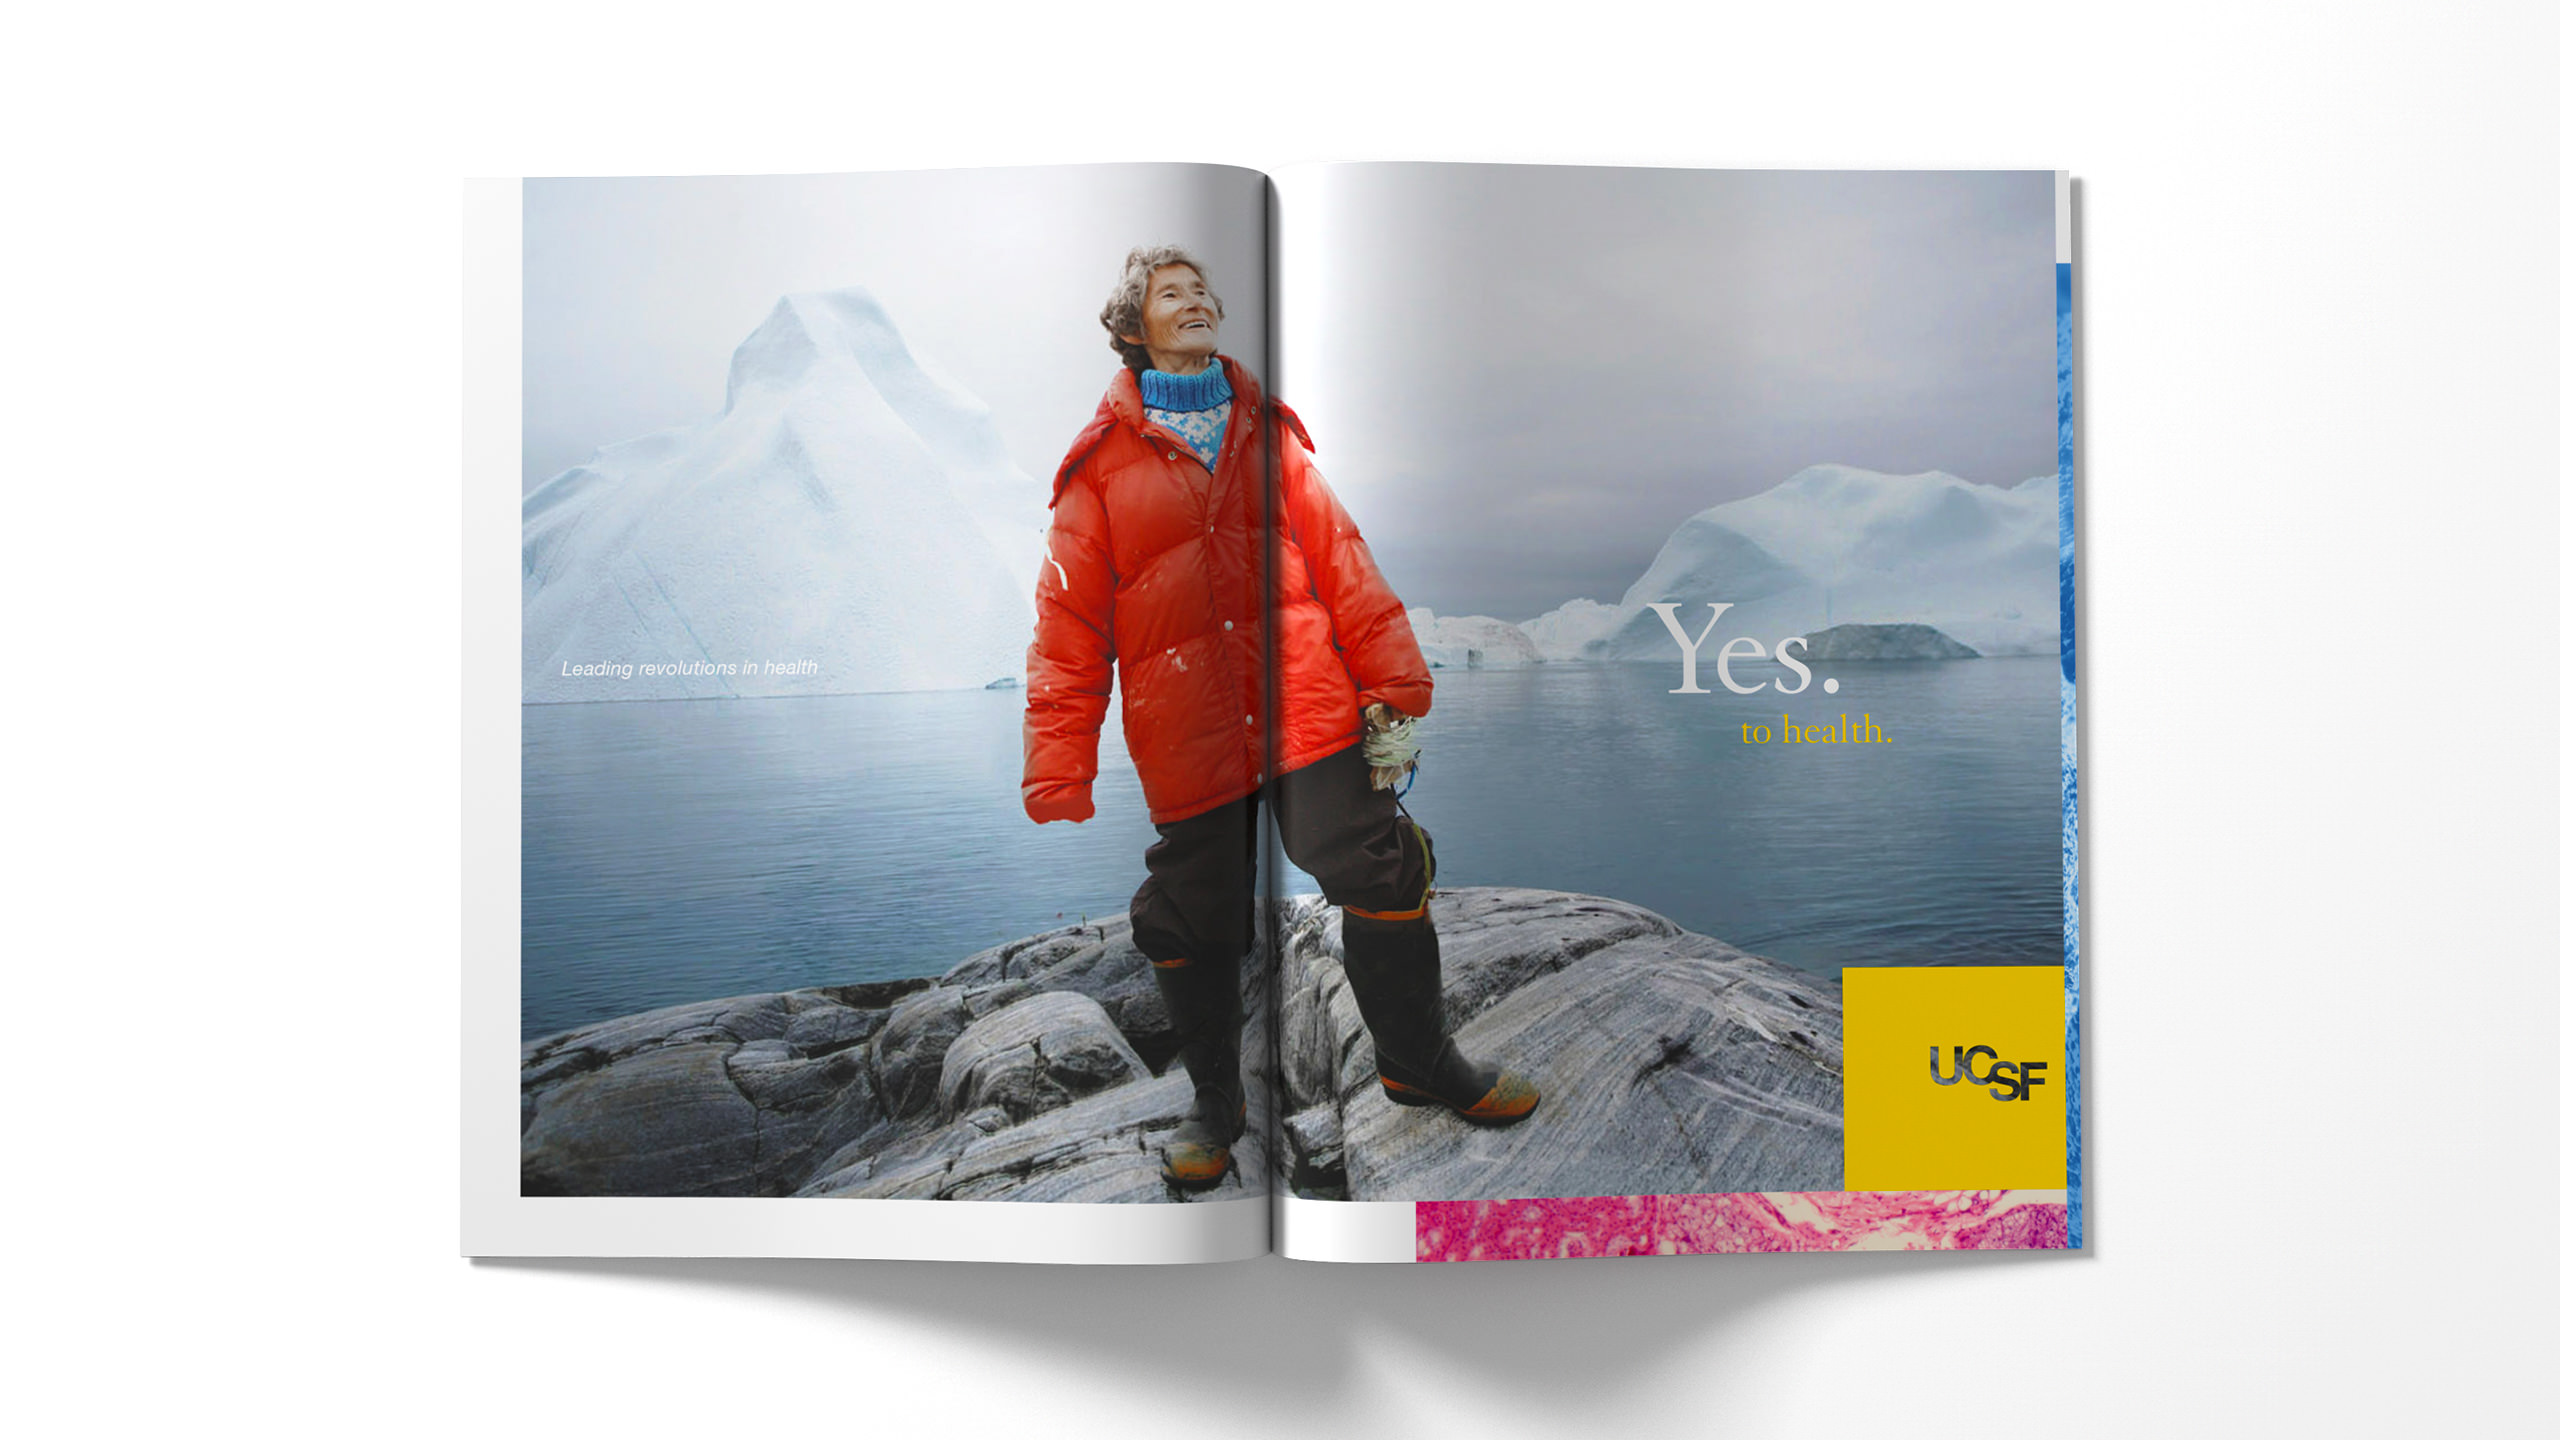 UCSF Brand Ad Magazine Spread - Yes to Health